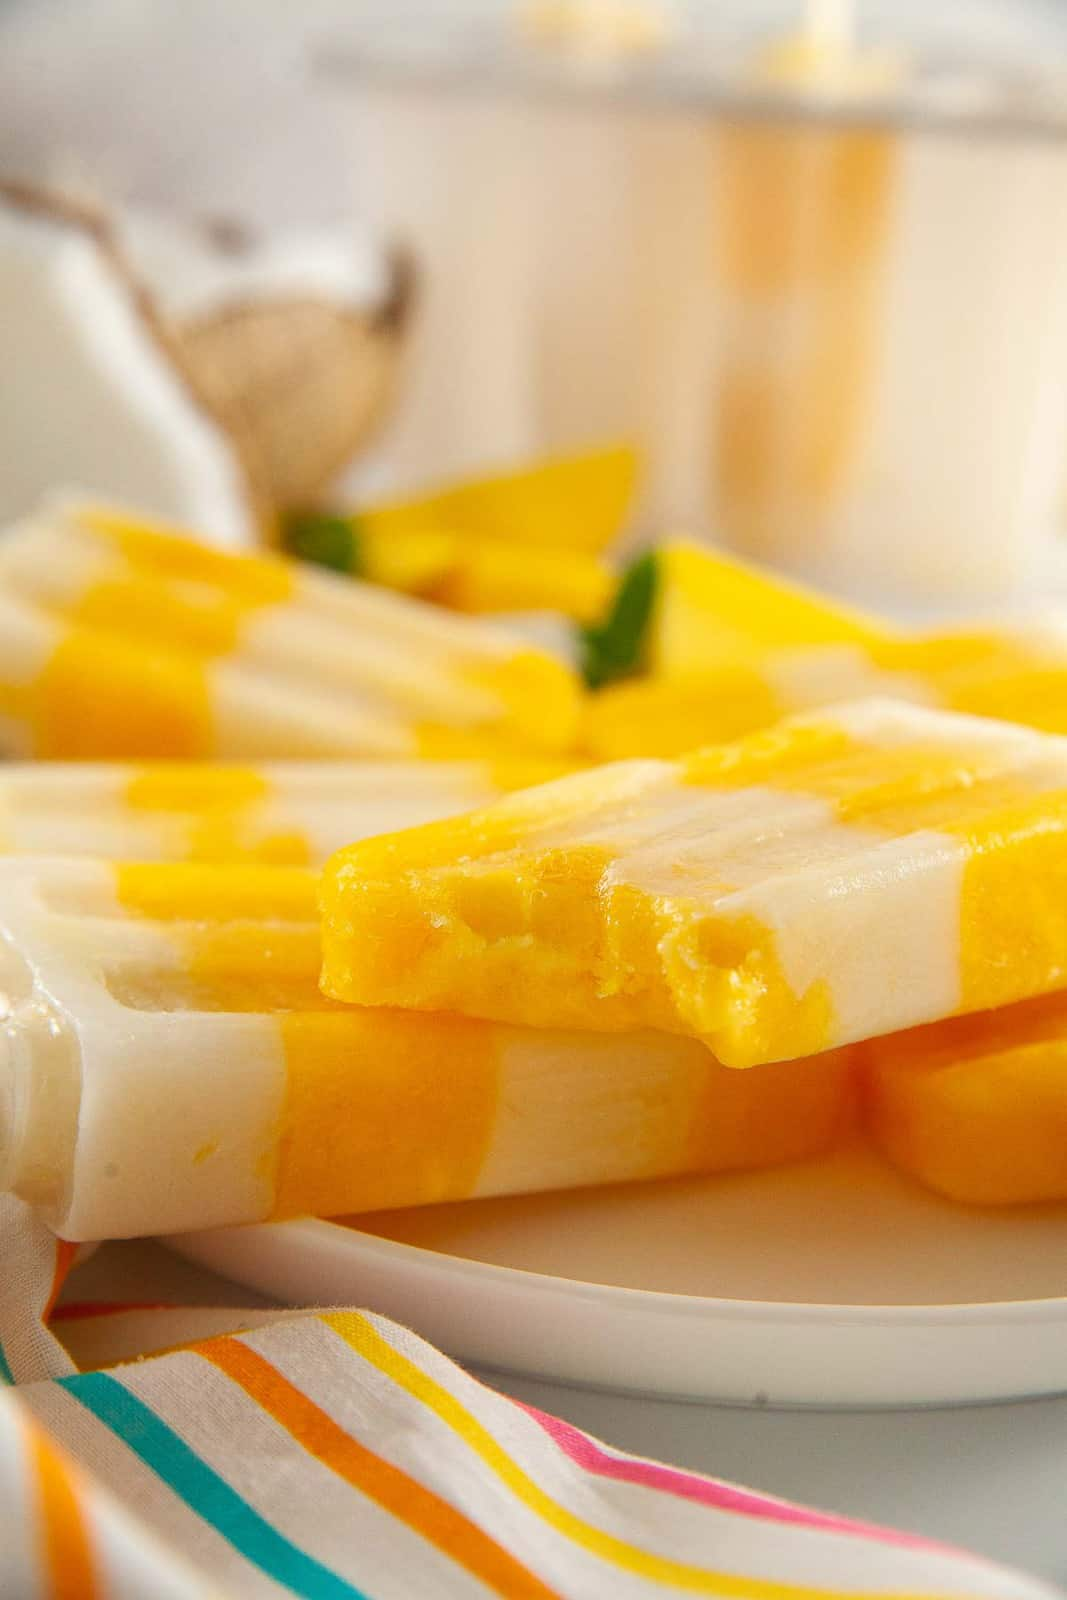 Vegan mango popsicles with a bite taken out of one.